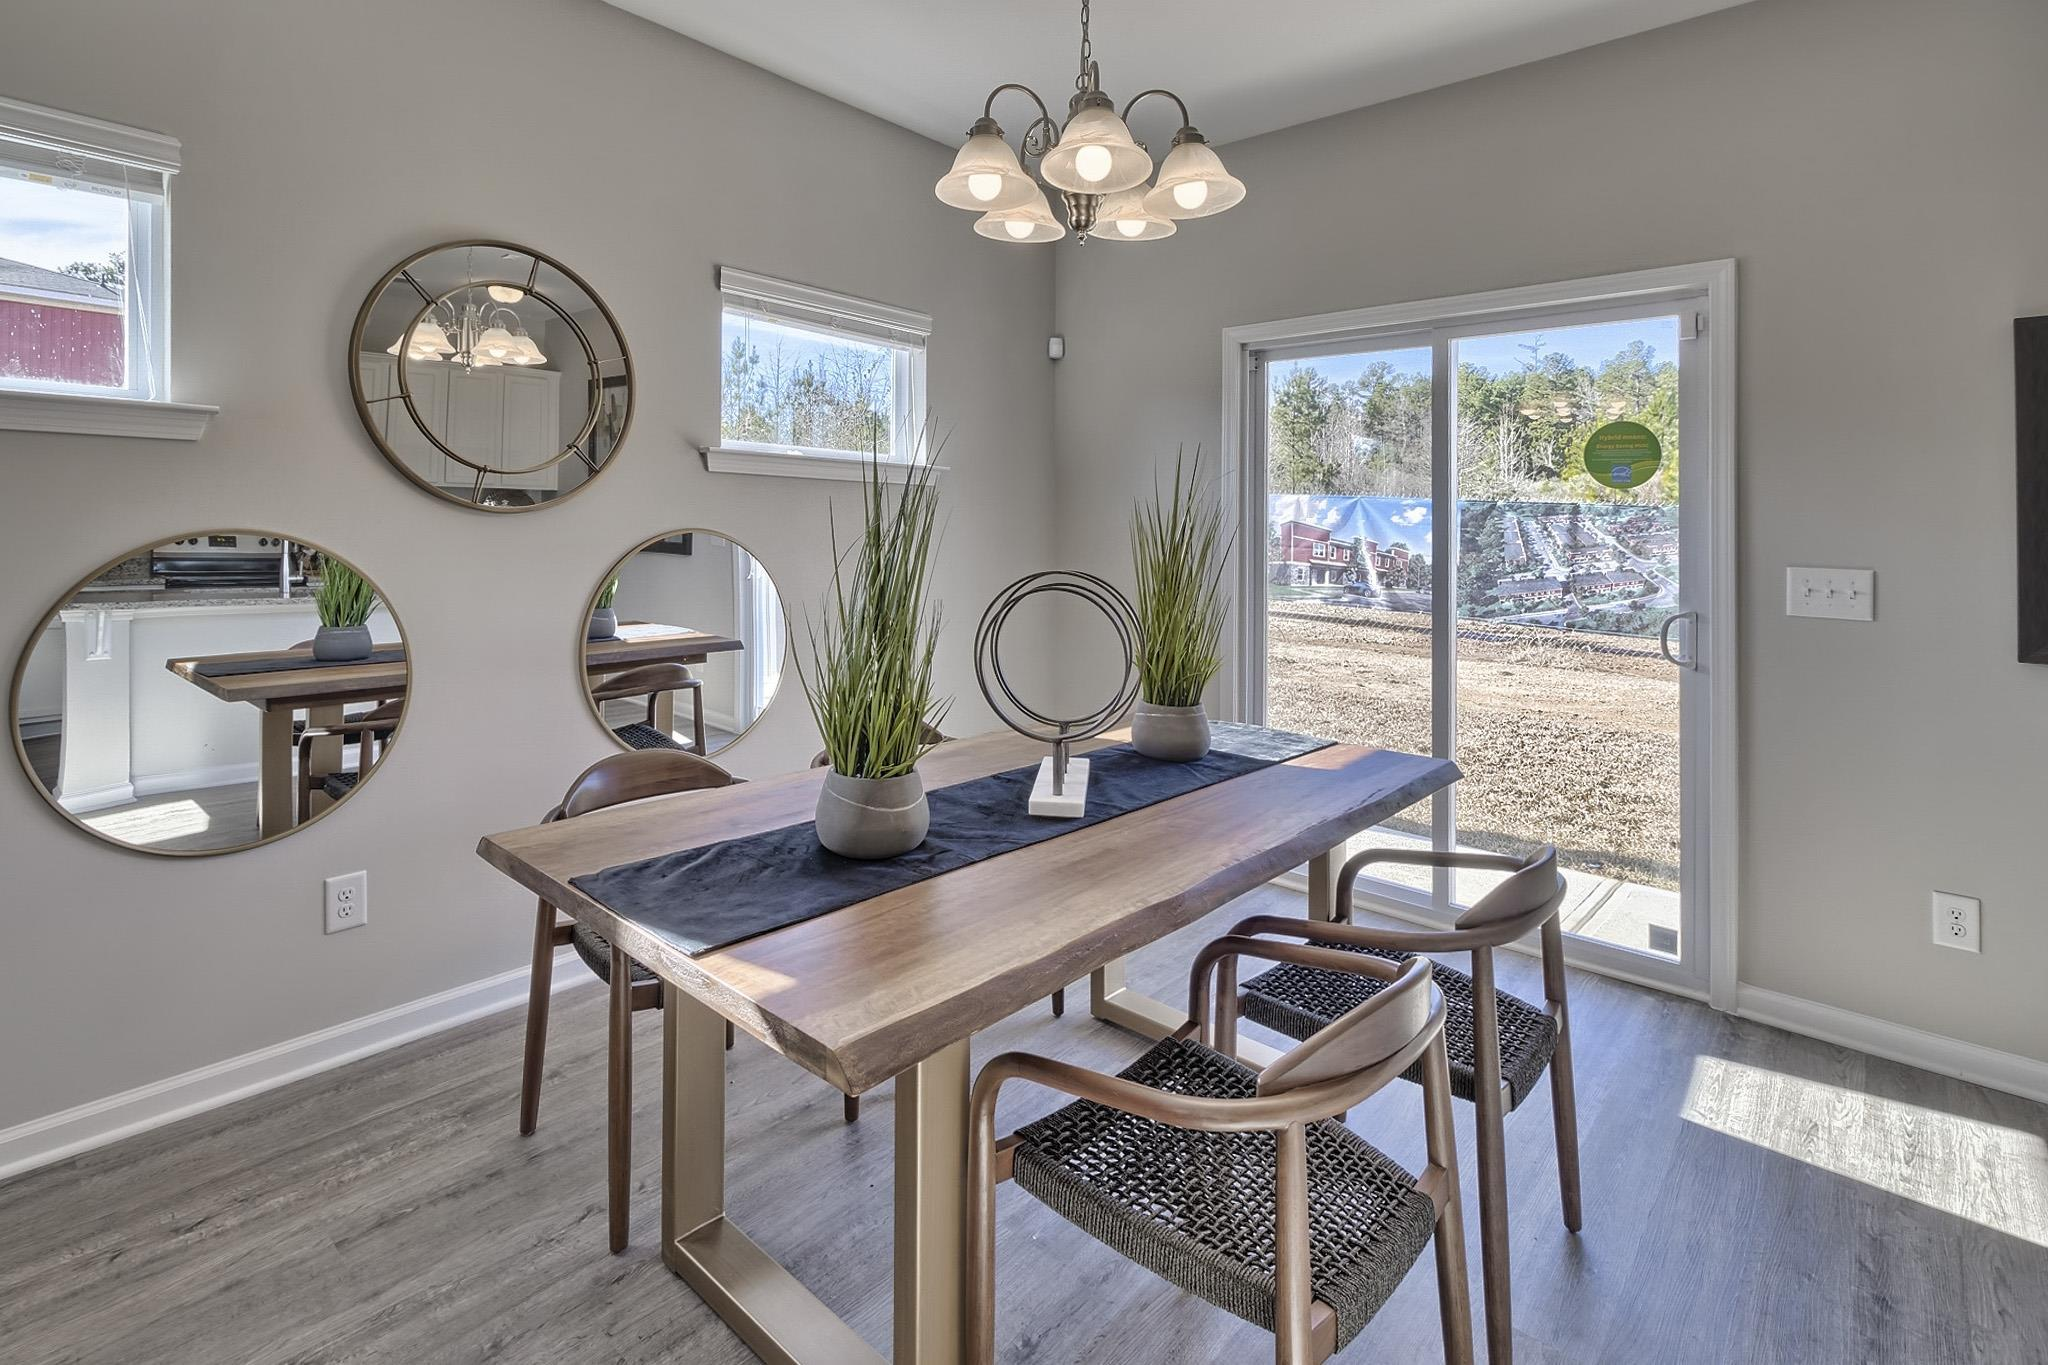 Kitchen featured in the Harbison Grove 3  By McGuinn Hybrid Homes in Columbia, SC